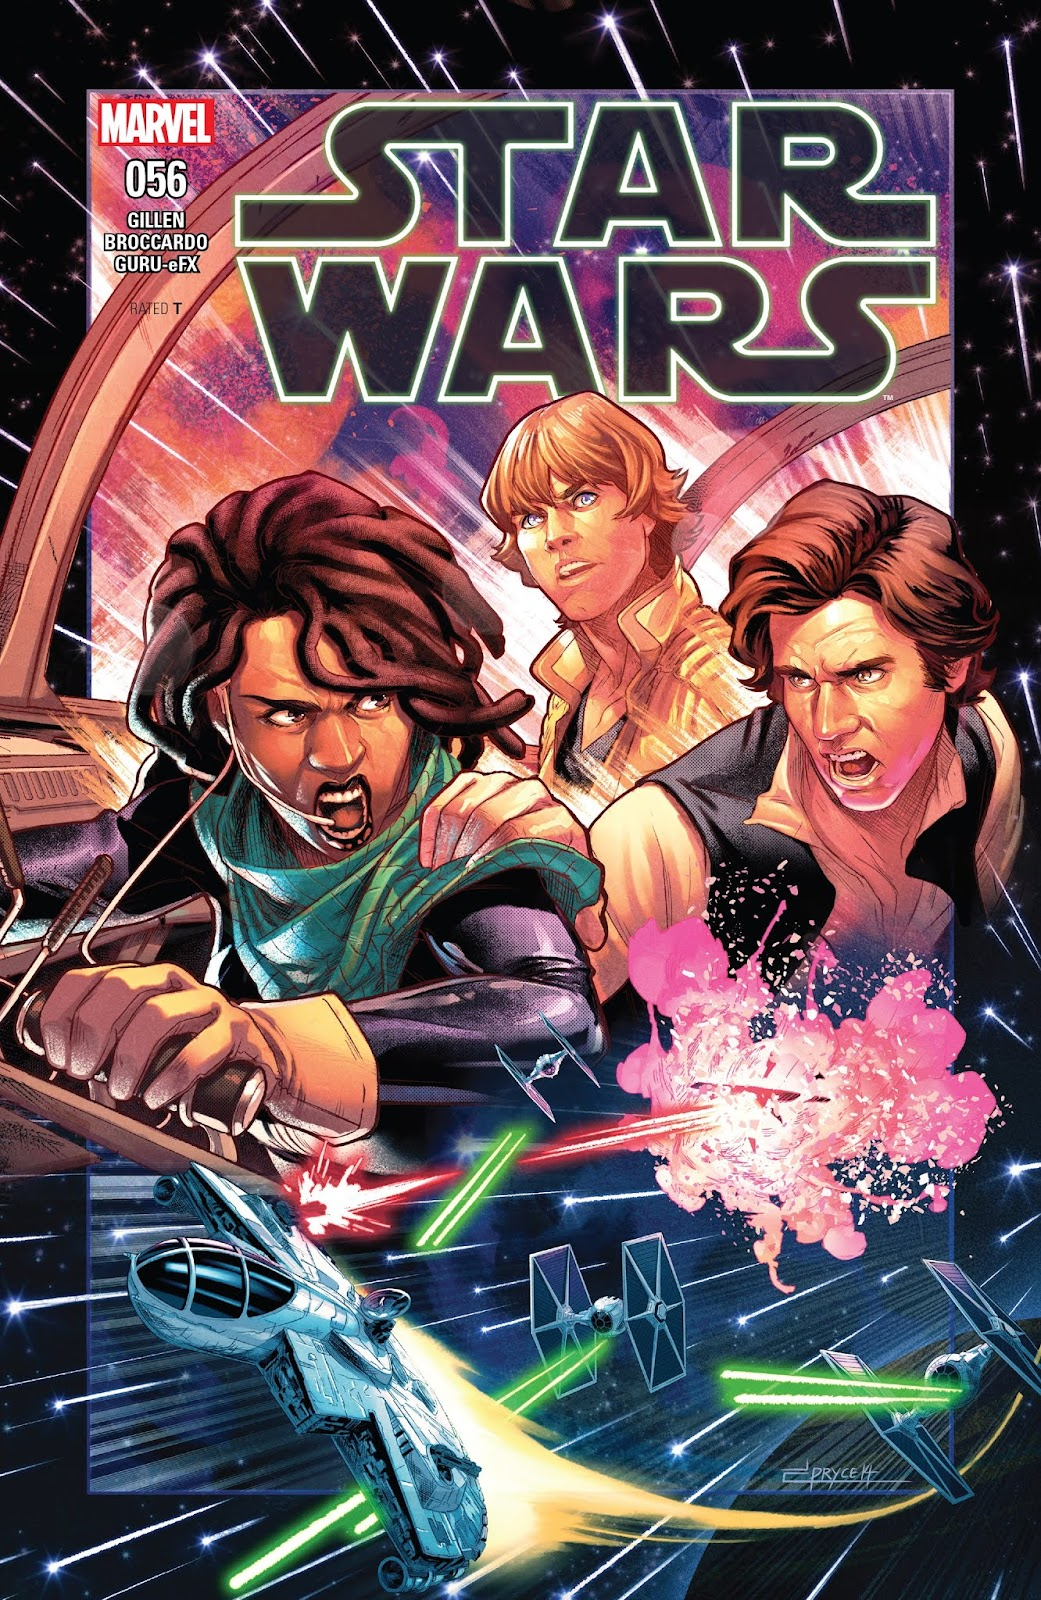 Star Wars (2015) issue 56 - Page 1